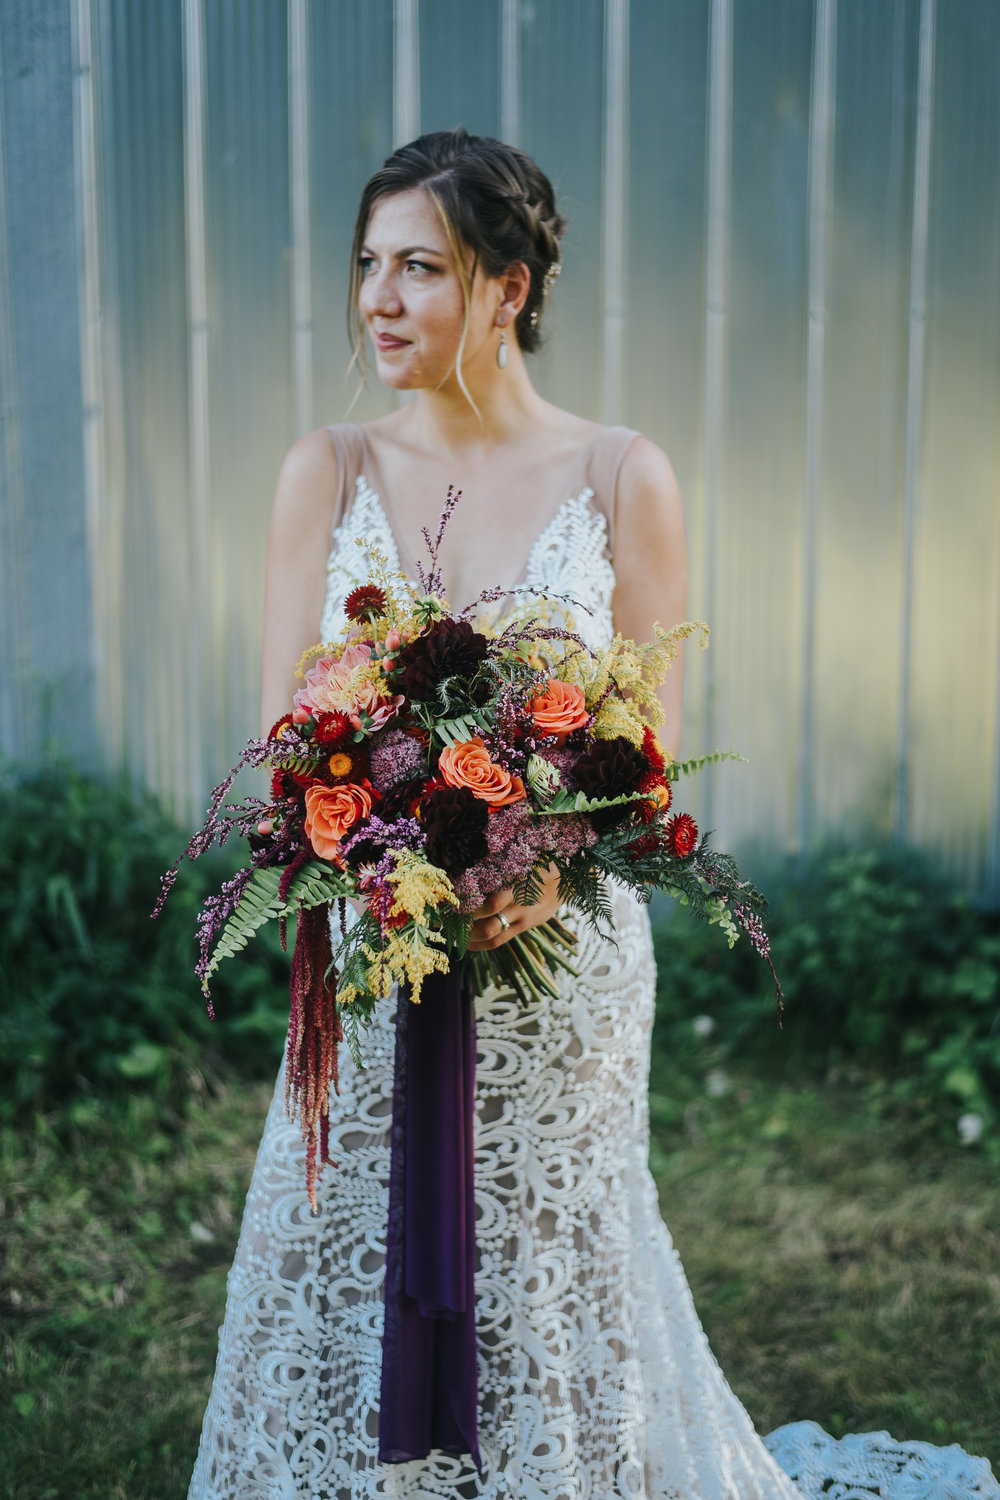 Wild Bouquet Photographer: Lauren McCormick Photography